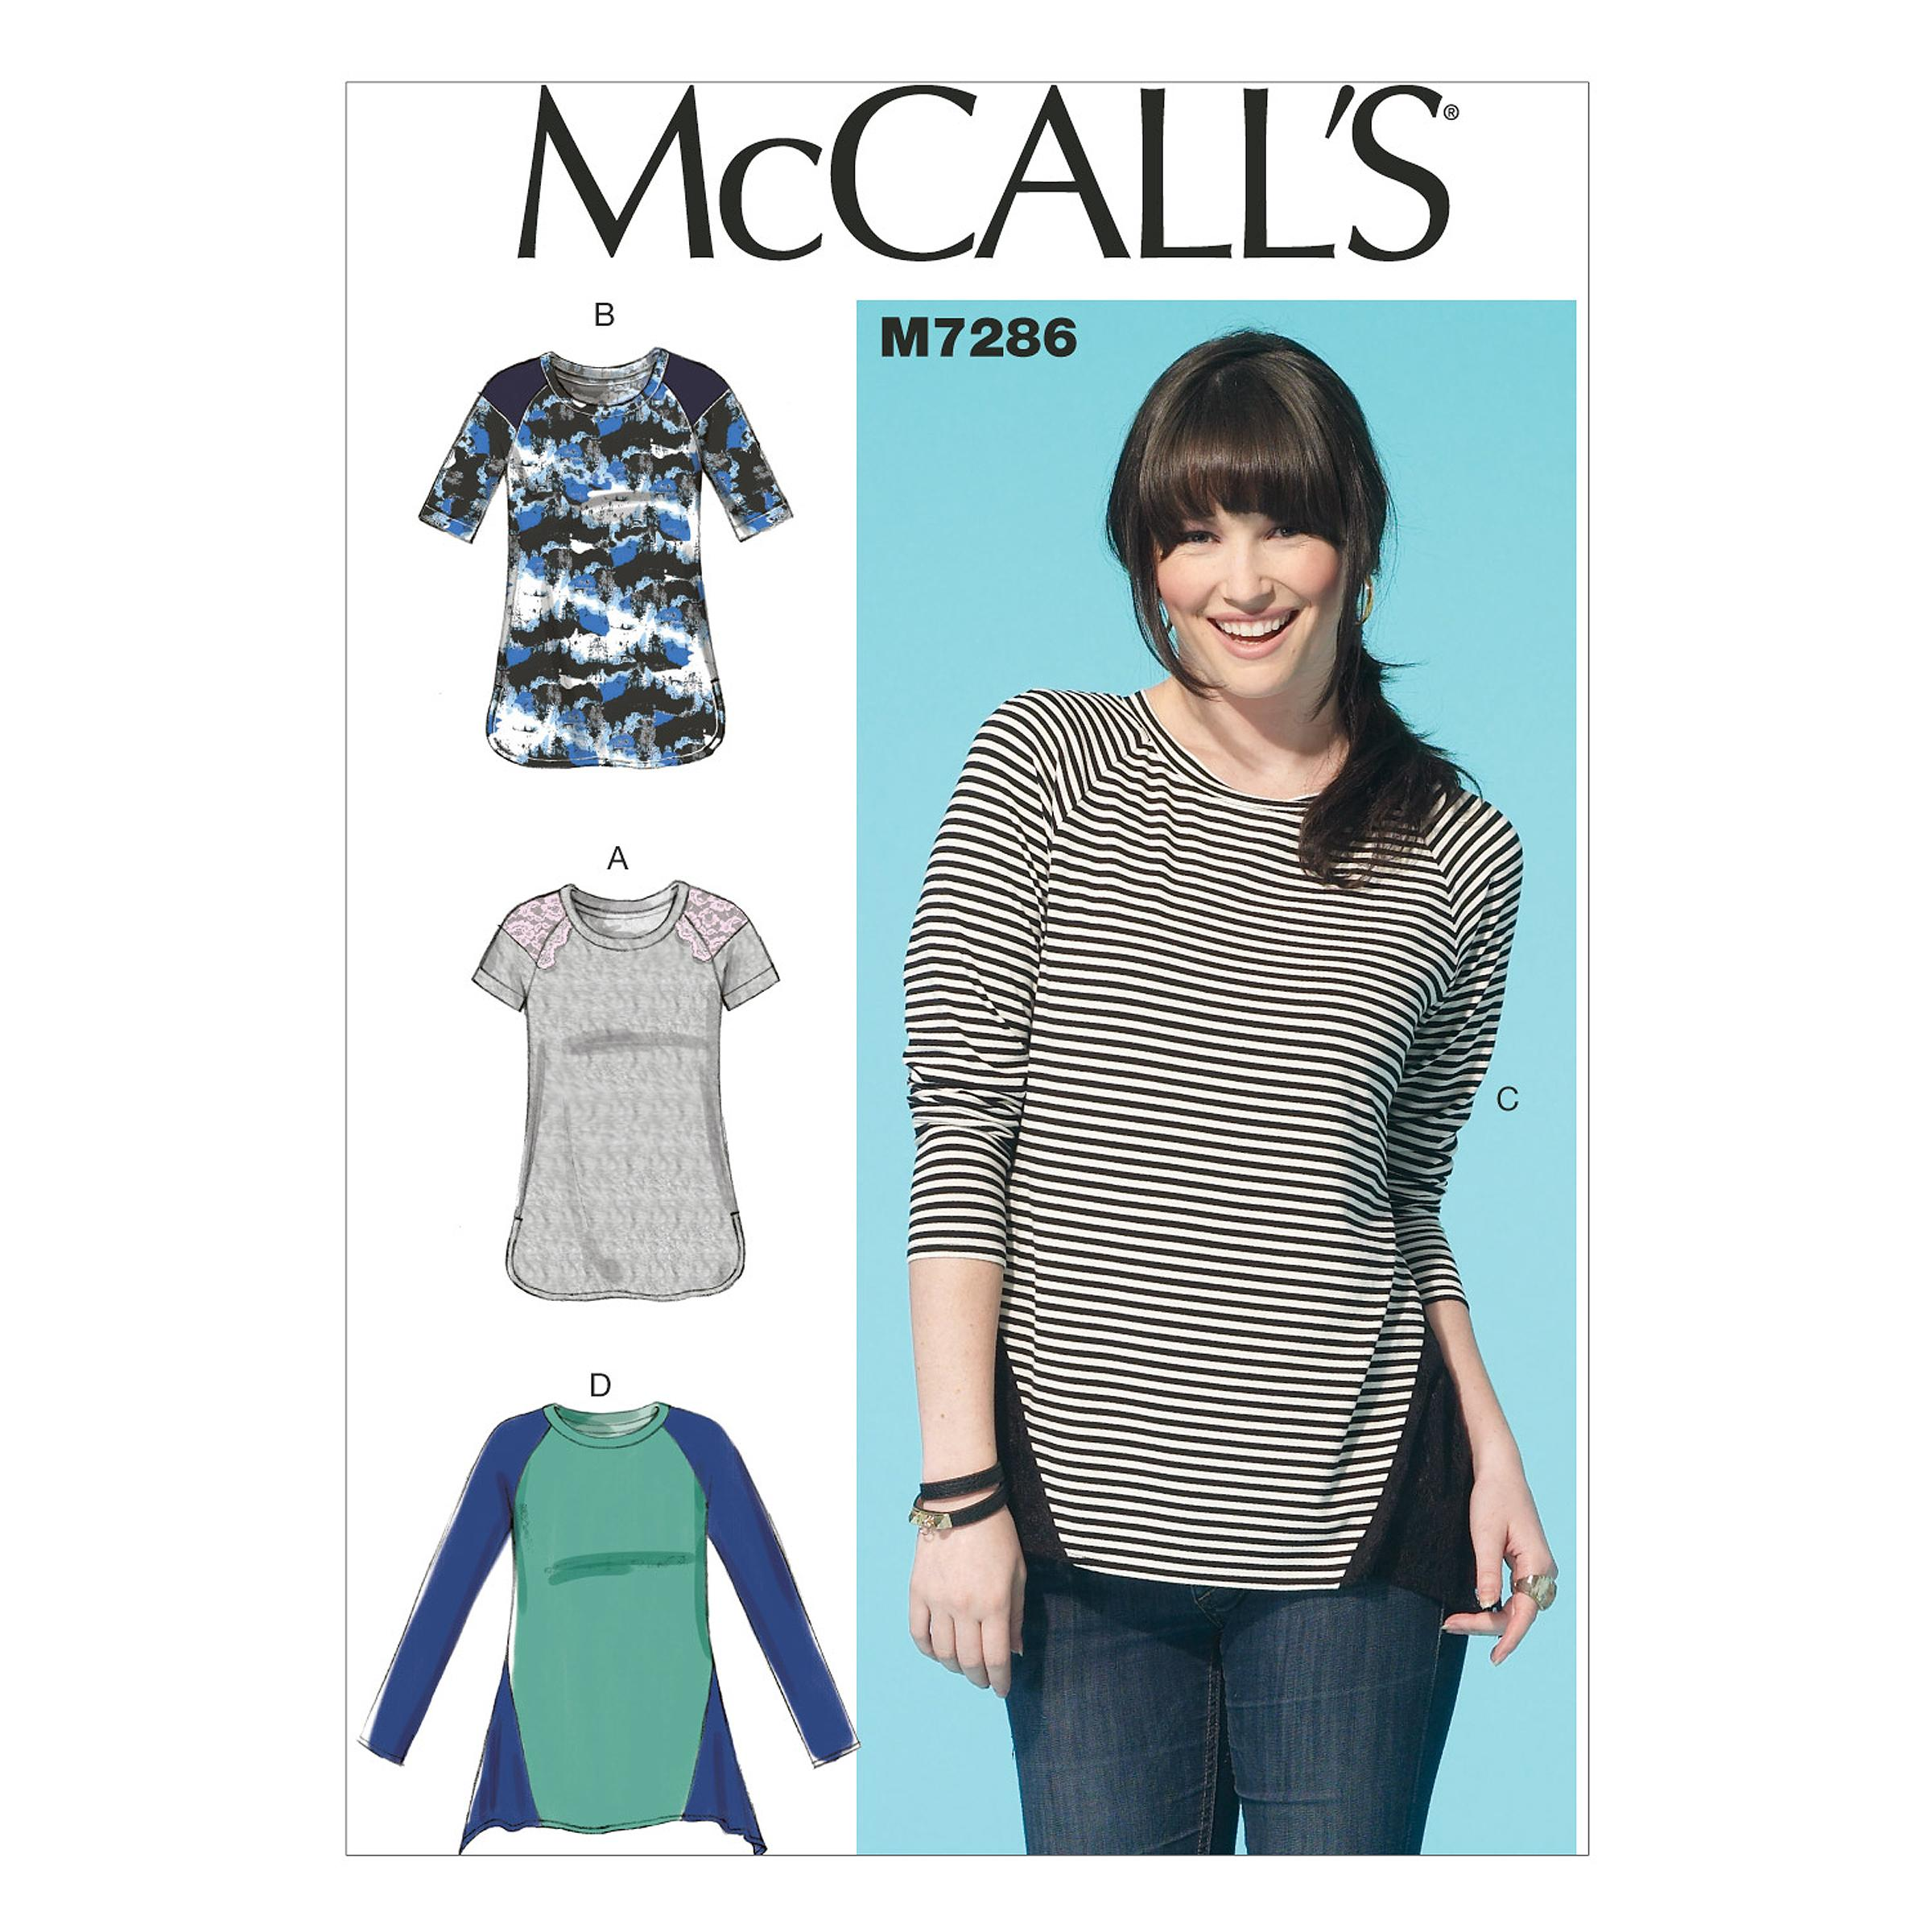 McCalls M7286 Tops/Tunics